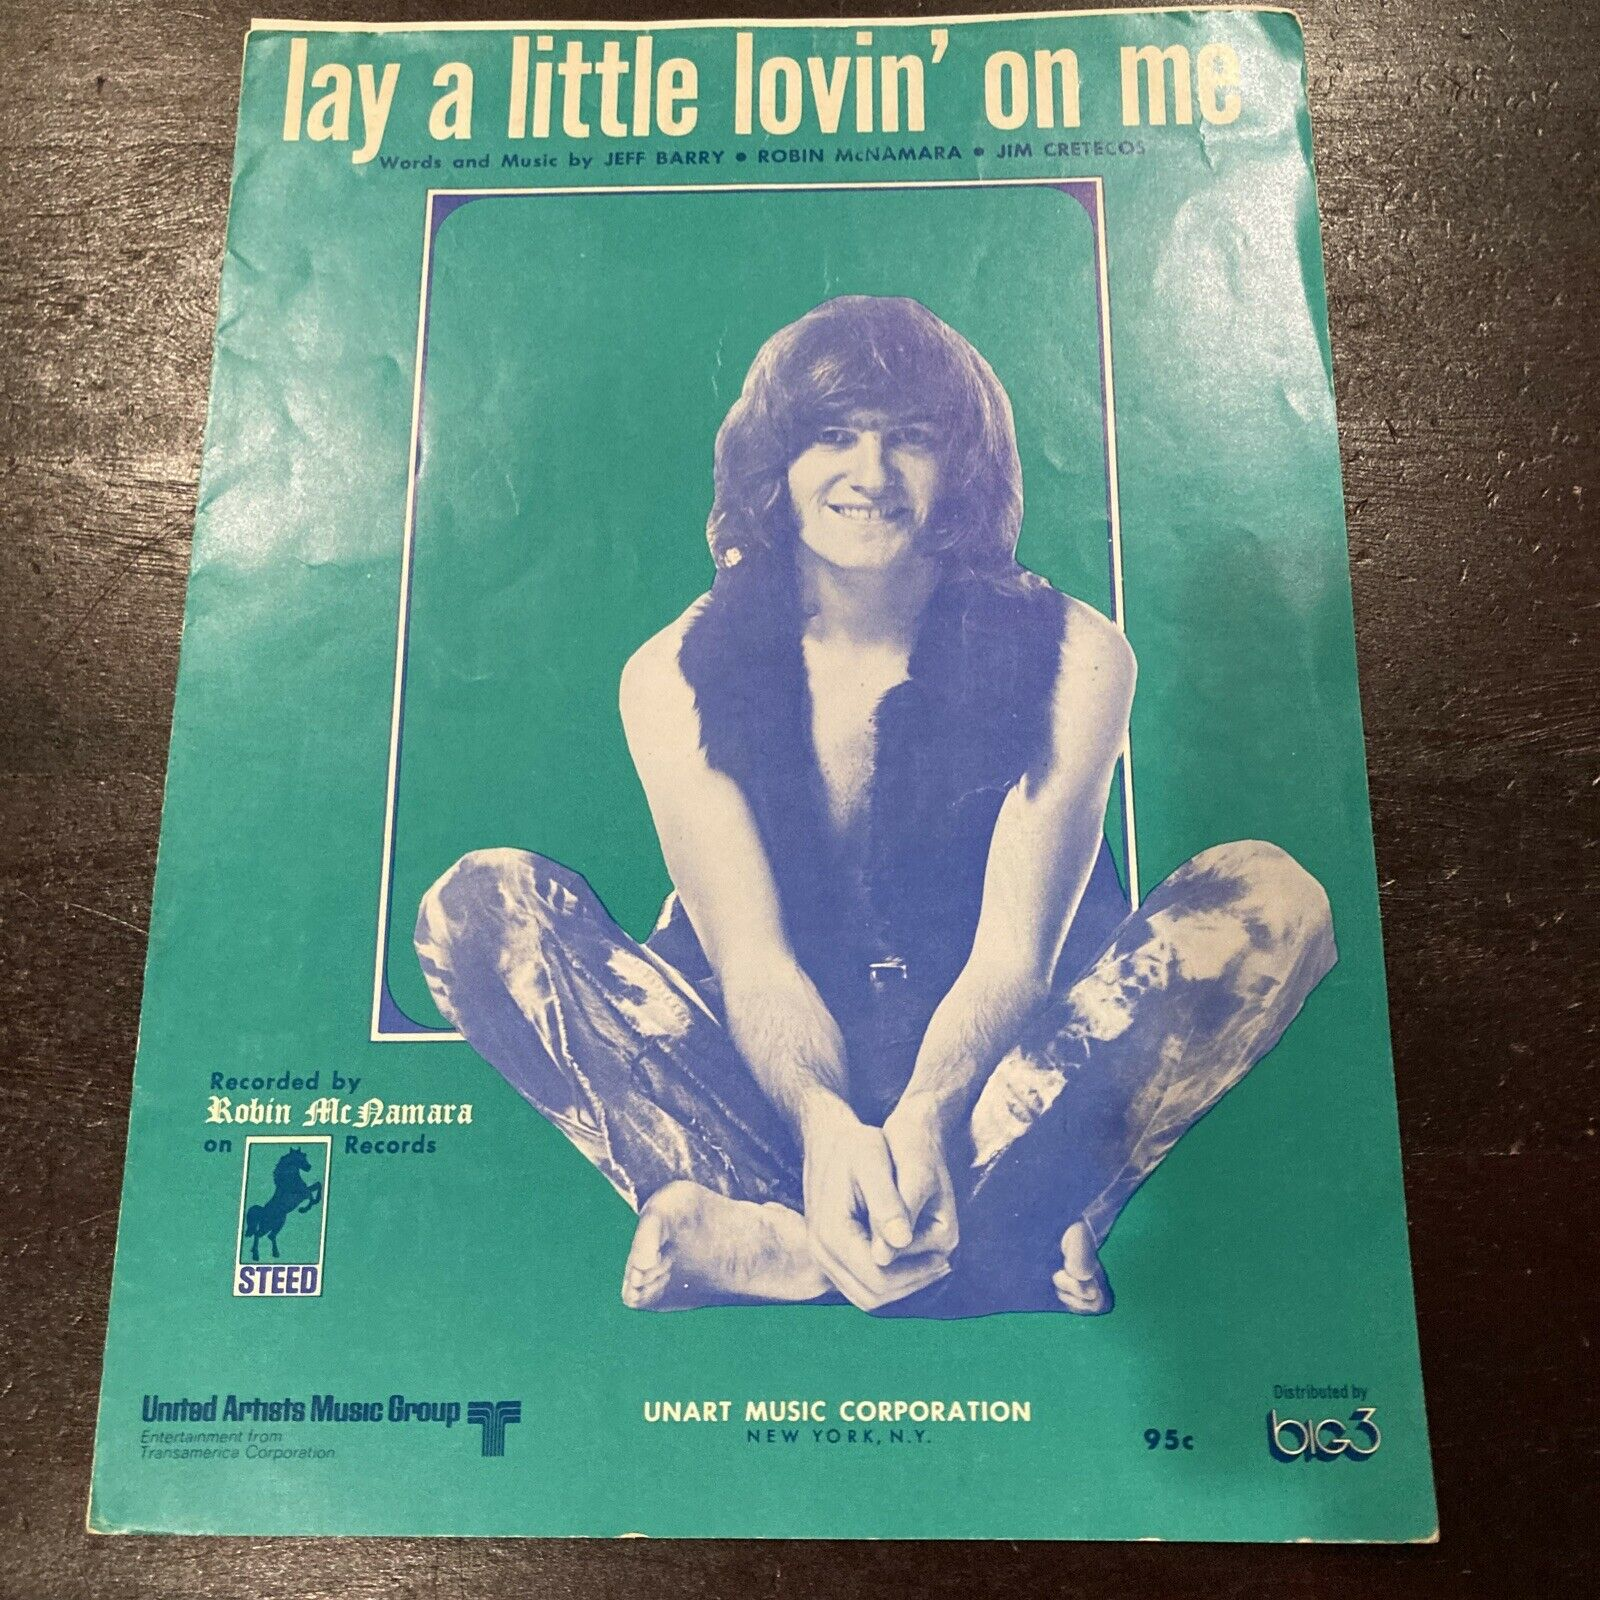 LAY A LITTLE LOVIN' ON ME Sheet Music ROBIN McNAMARA Pop #11 Hit 1970 Complete